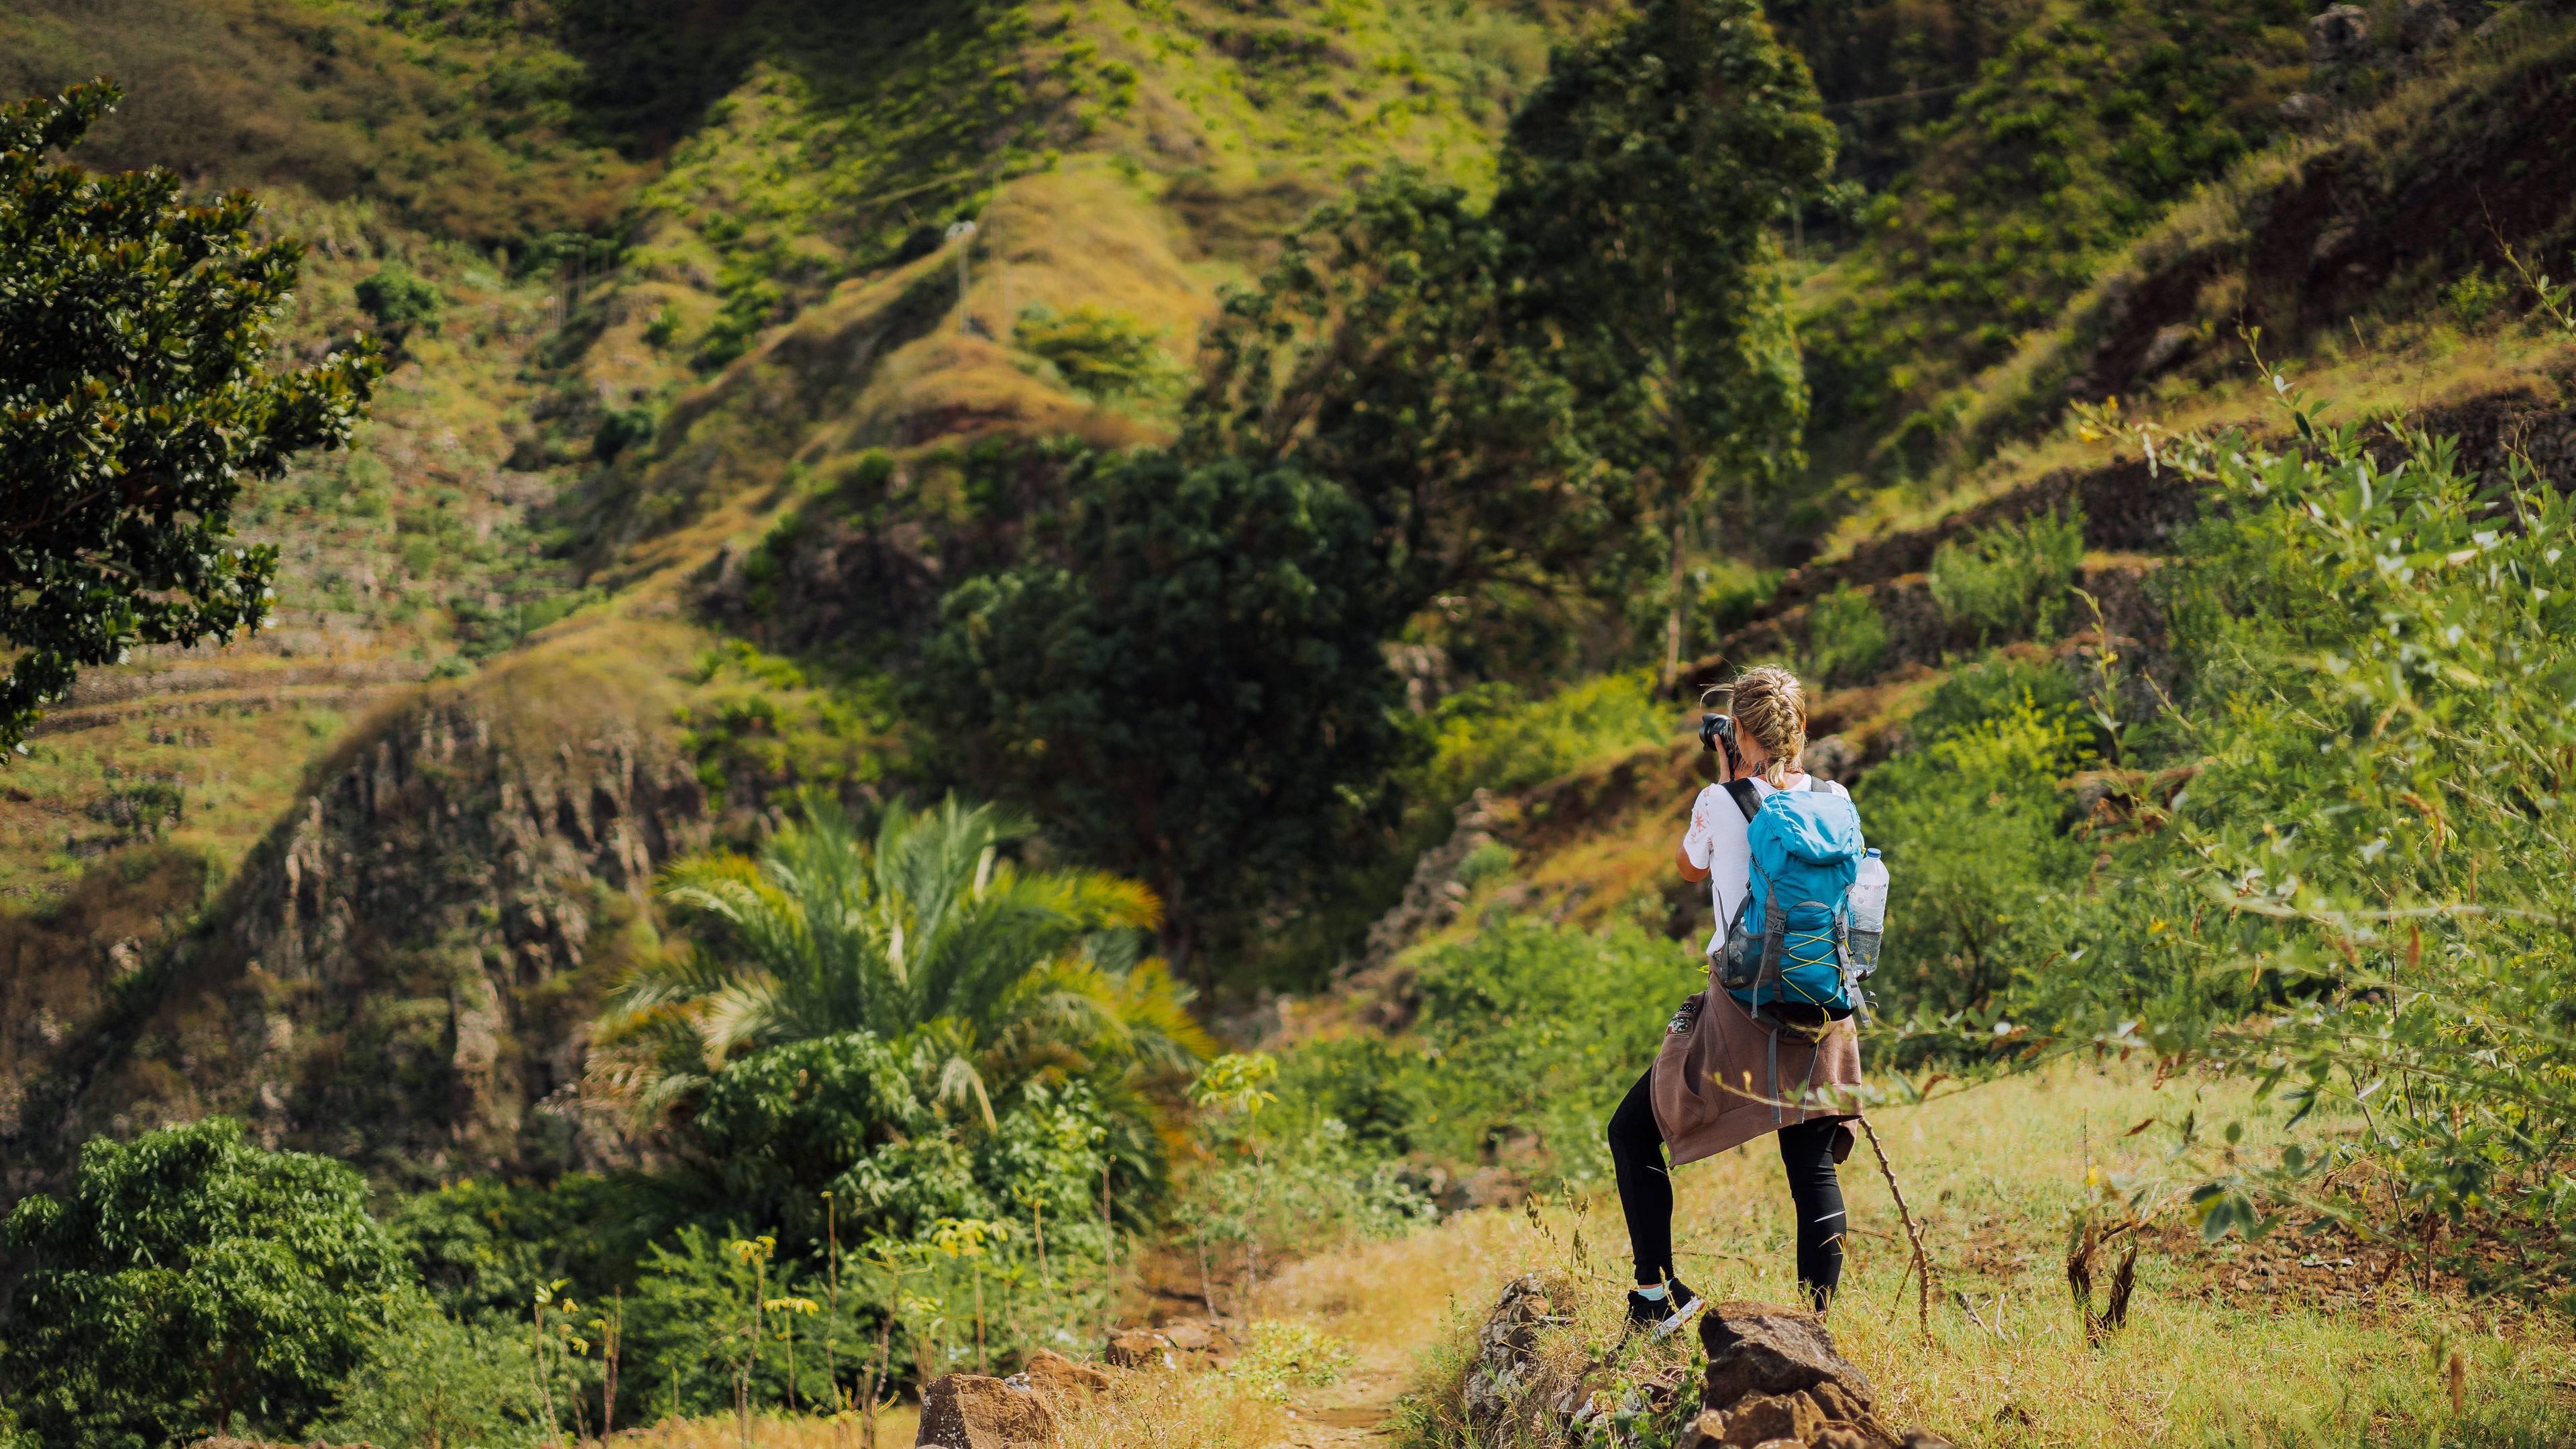 Major New Study To Assess Tourism's Growing Commitment To Sustainable Development